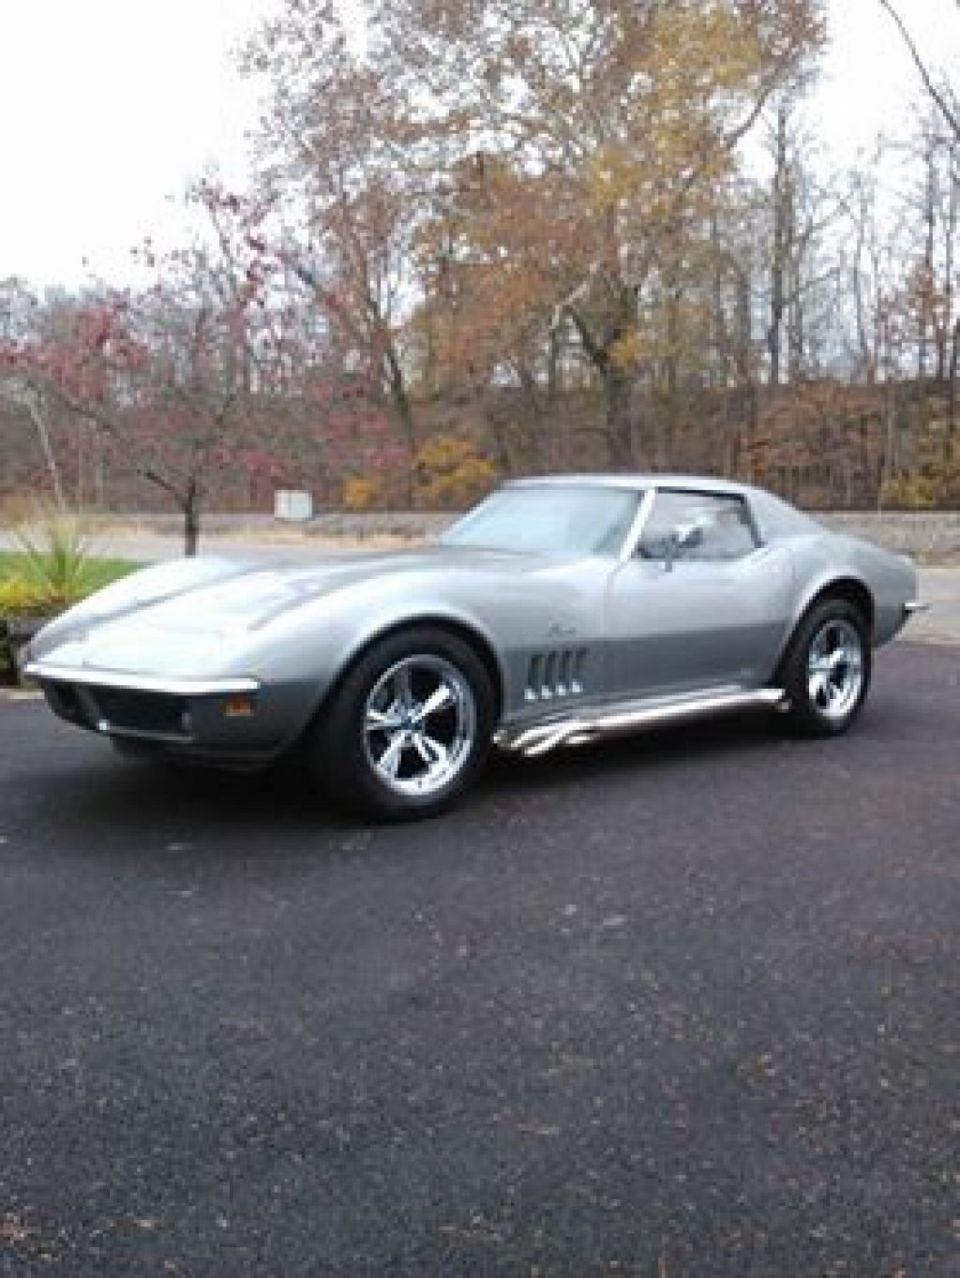 Almost forgot my first new car. 1969 Corvette bought from Don Yenko in 1969. All cars are for sale except for the corvette1